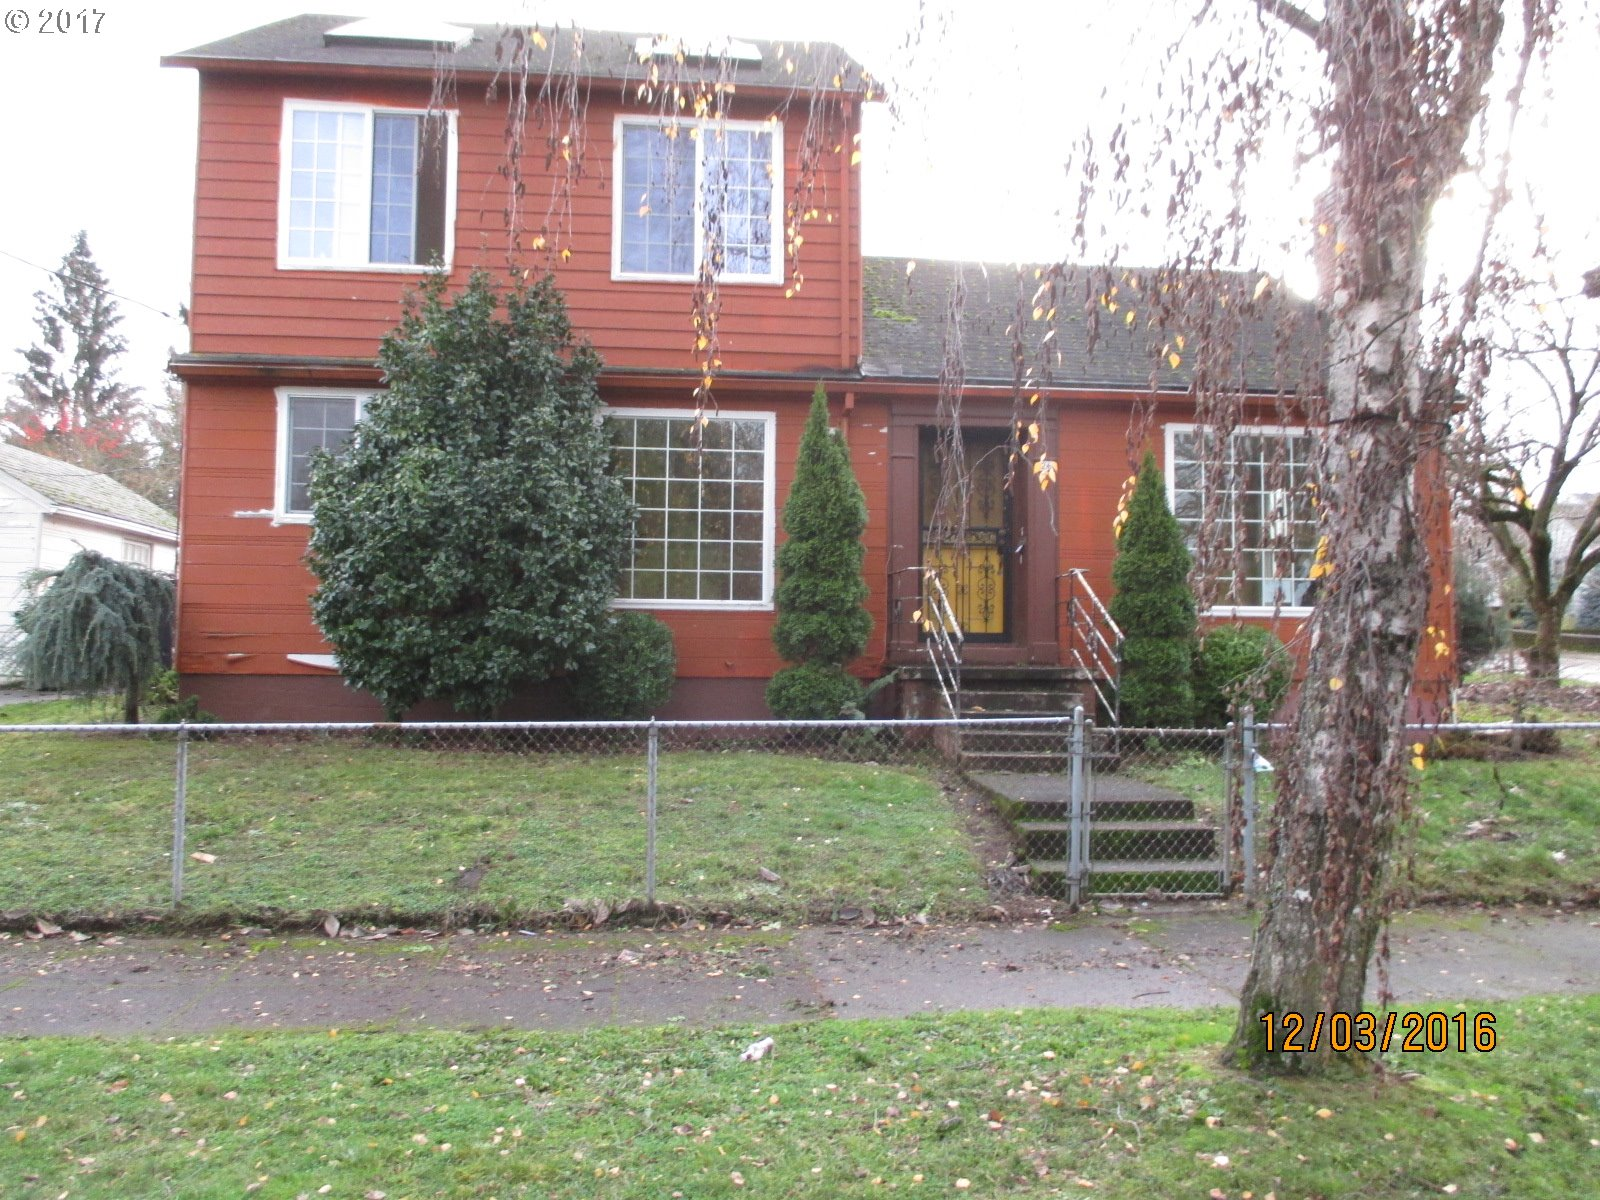 2720 sq. ft 4 bedrooms 2 bathrooms  House , Portland, OR